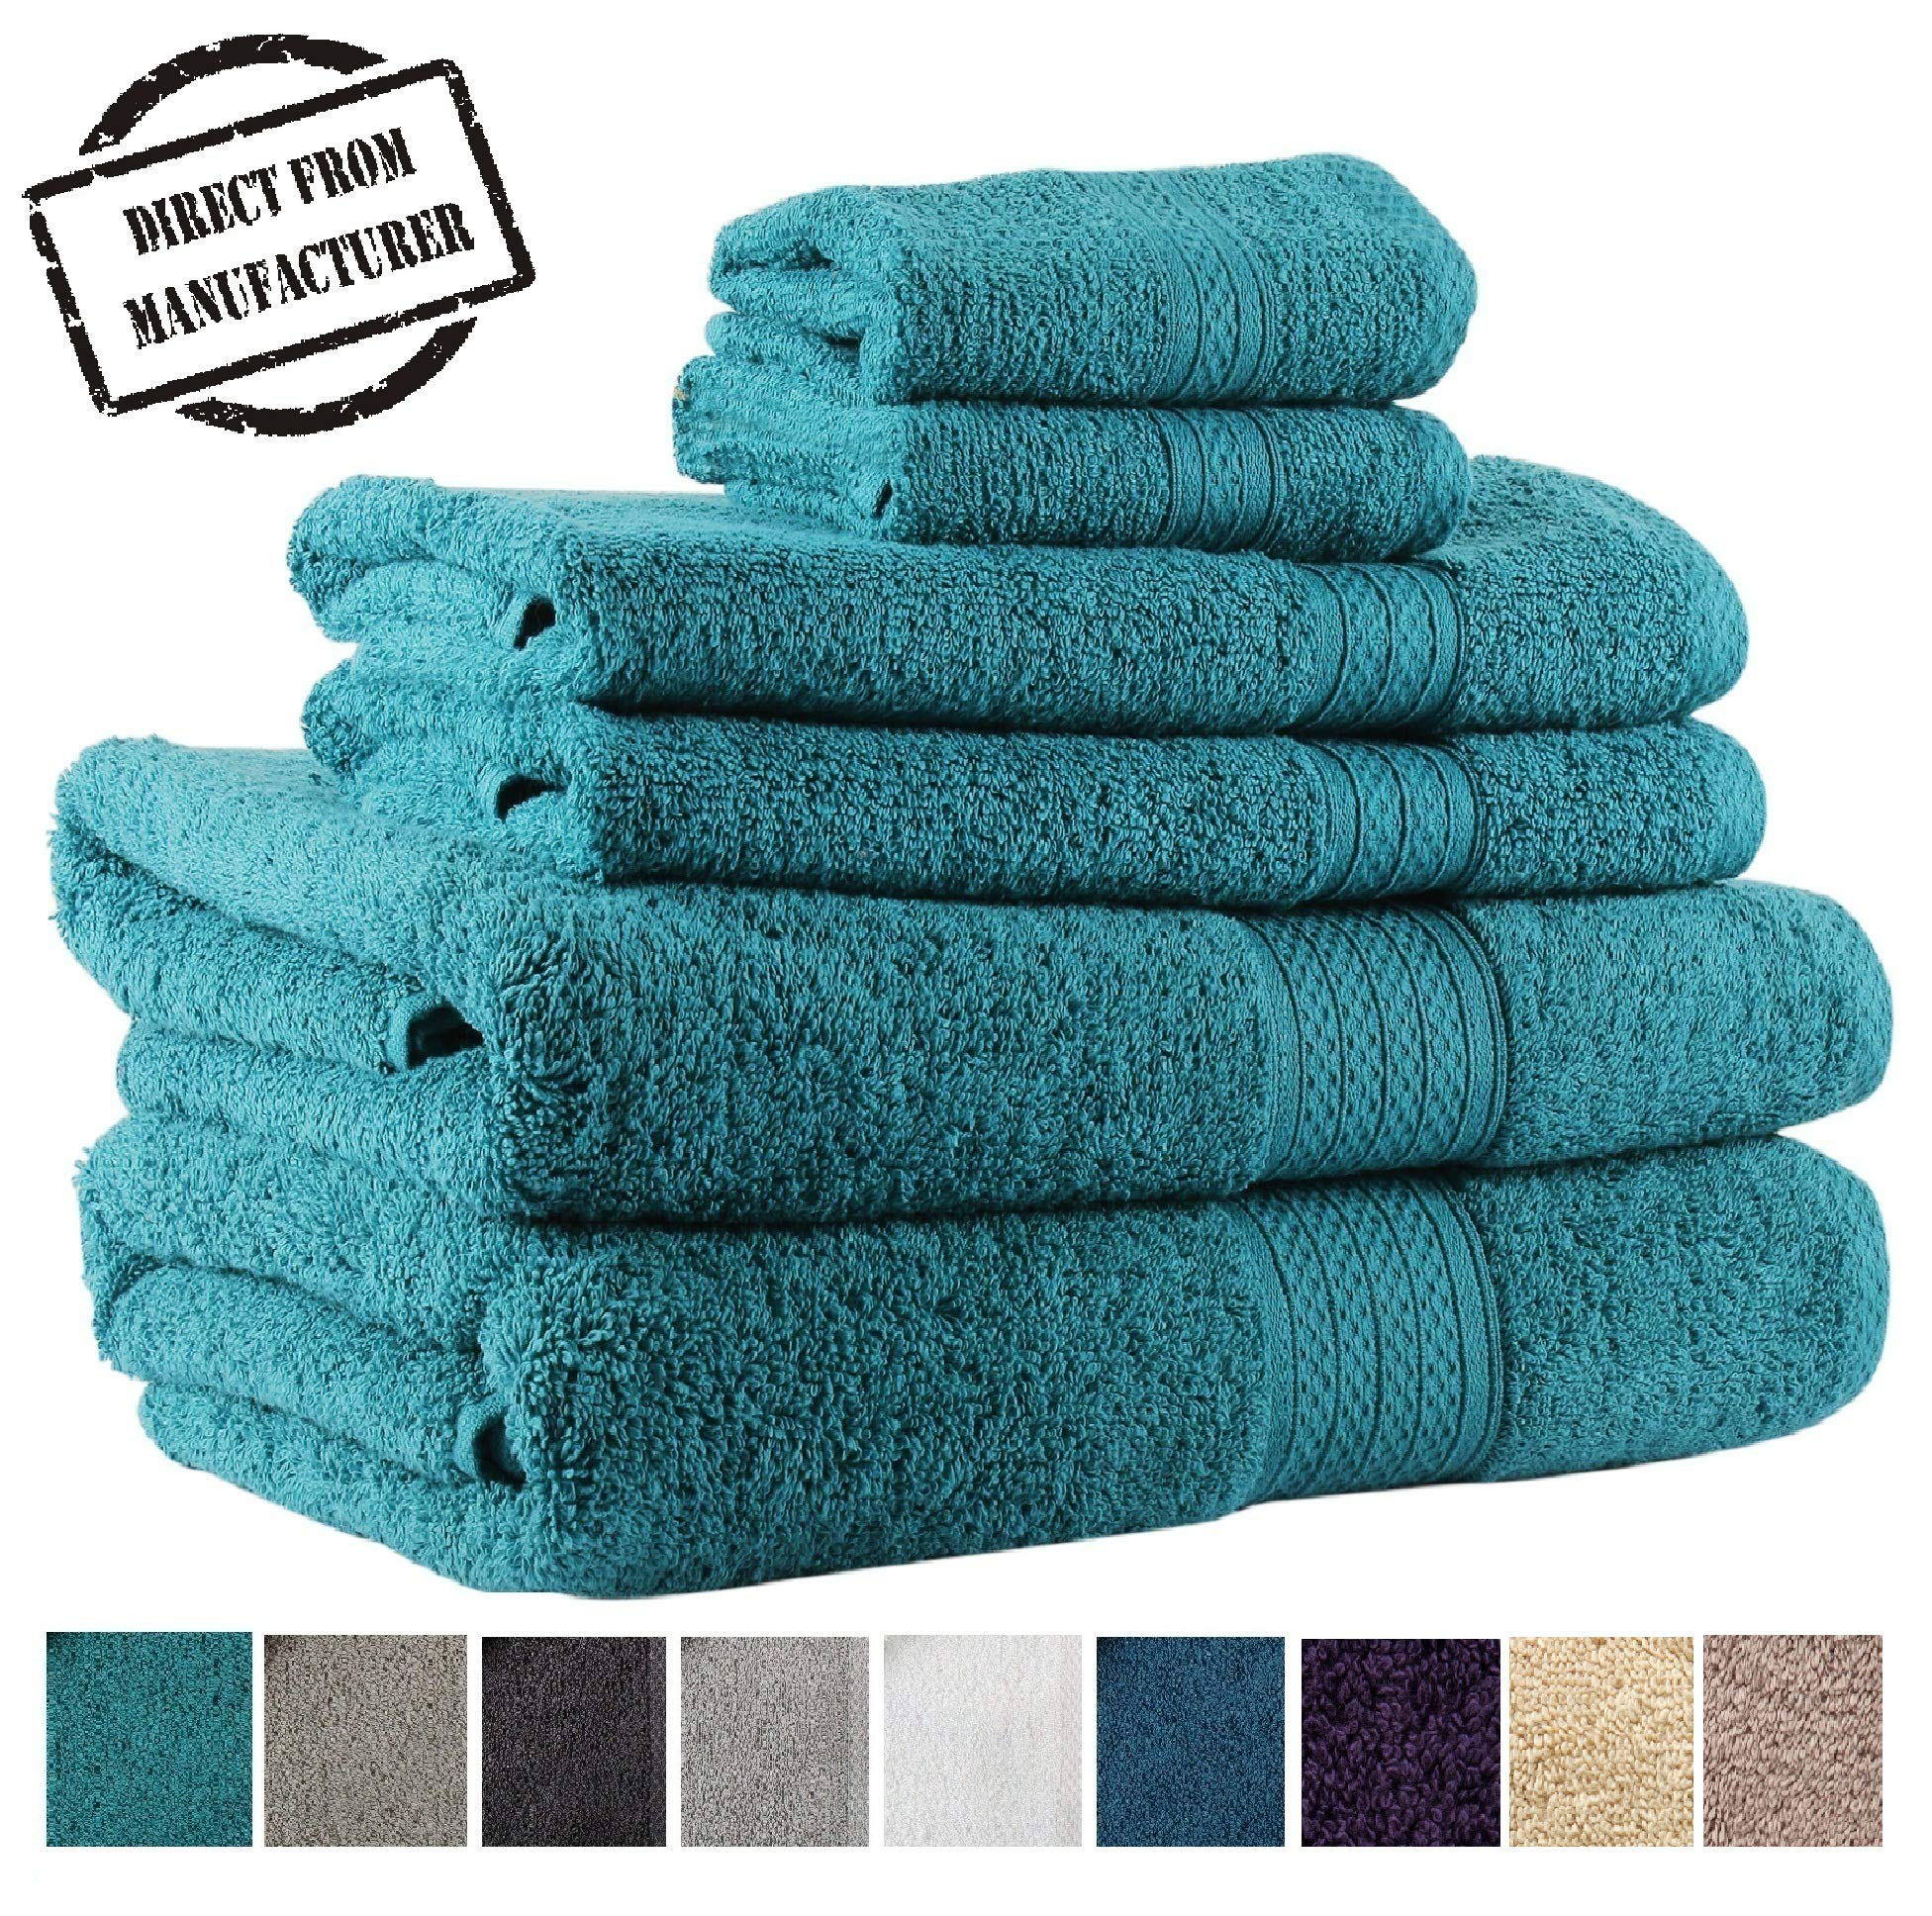 Premium 6 piece Towel Set- 2 Extra Large Bath Towels 2 Hand Towel 2 Washcloth Soft Cotton 600 GSM Highly Absorbent by Avira Home(Emerald)